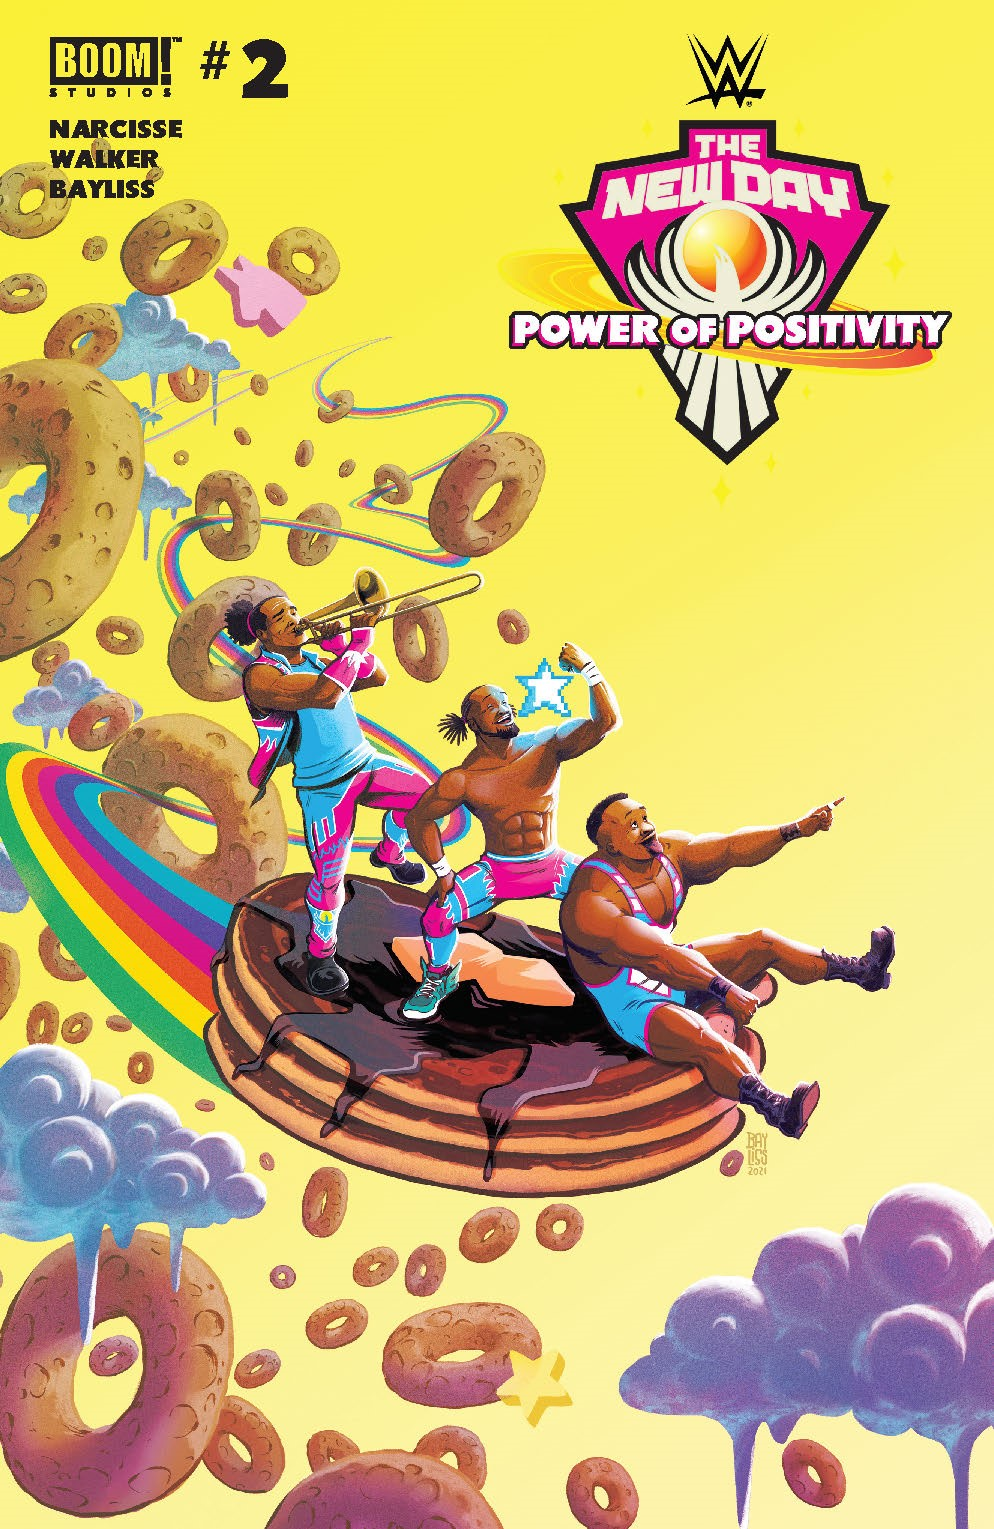 WWE_NewDay_002_Cover_A_Main ComicList Previews: WWE THE NEW DAY POWER OF POSITIVITY #2 (OF 2)